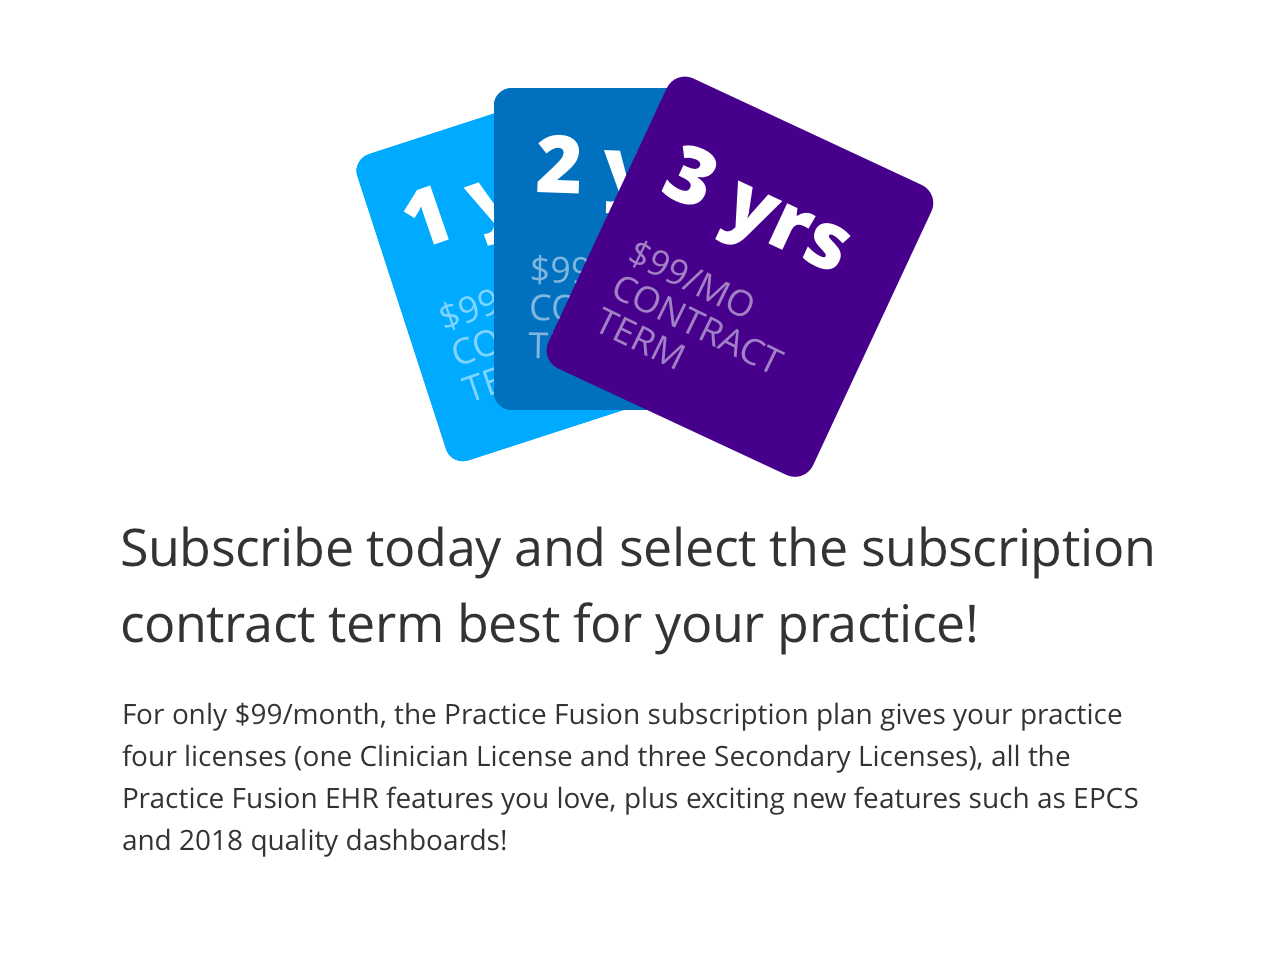 Subscribe today and select the subscription contract term best for your practice!